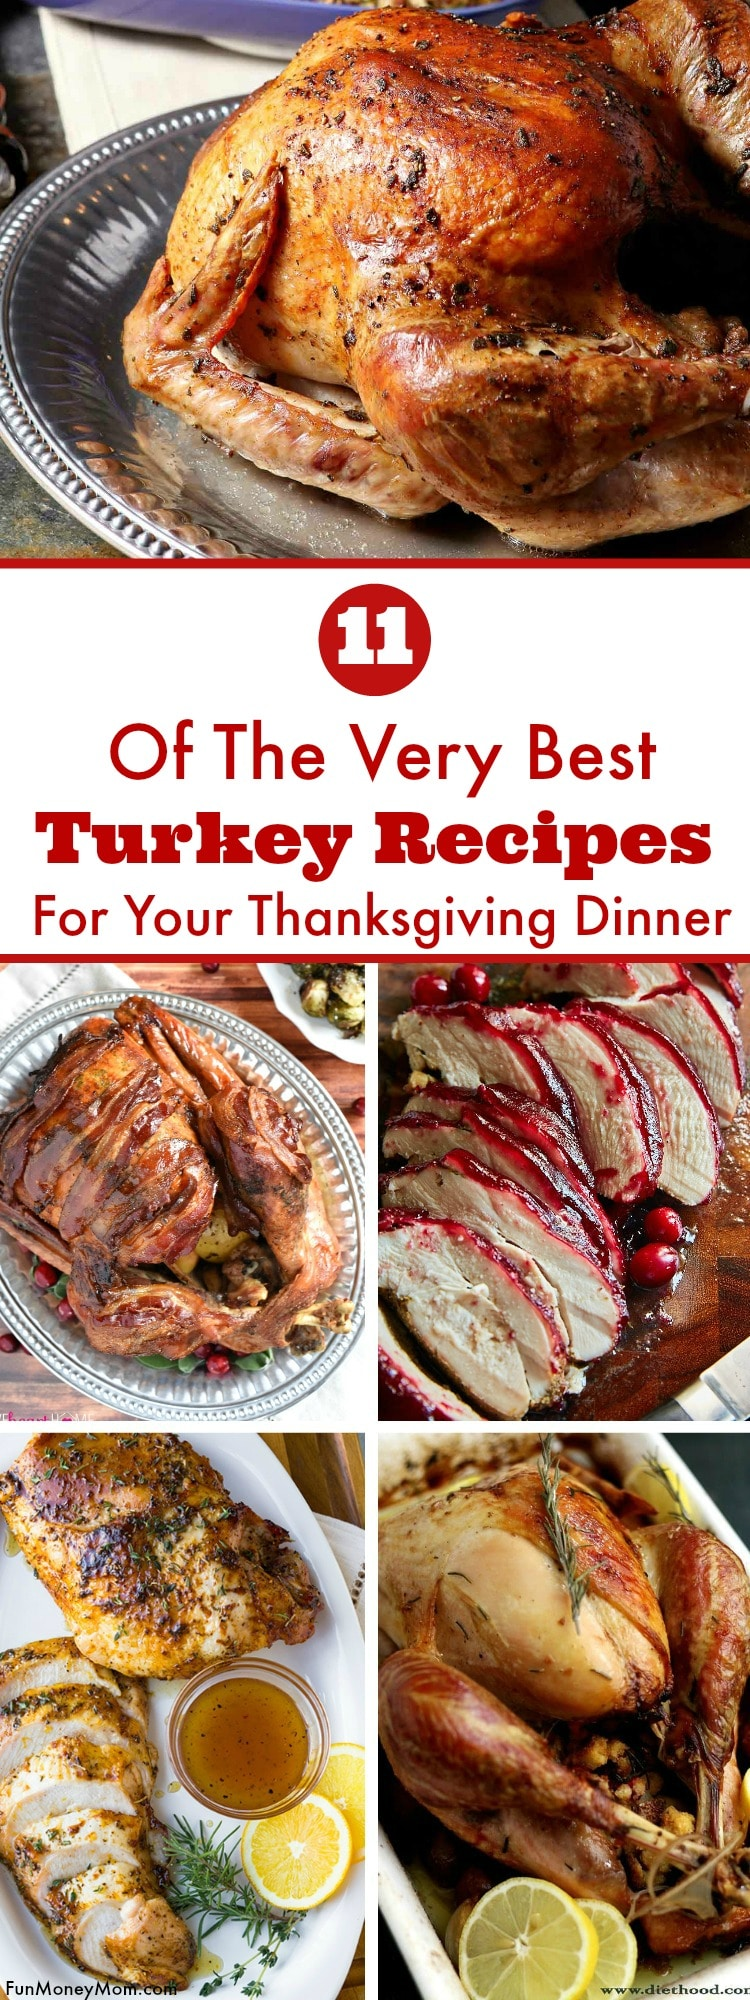 Hosting Thanksgiving at your house this year? Your family will really enjoy the holidays when you serve one of these mouthwatering Thanksgiving turkey recipes.